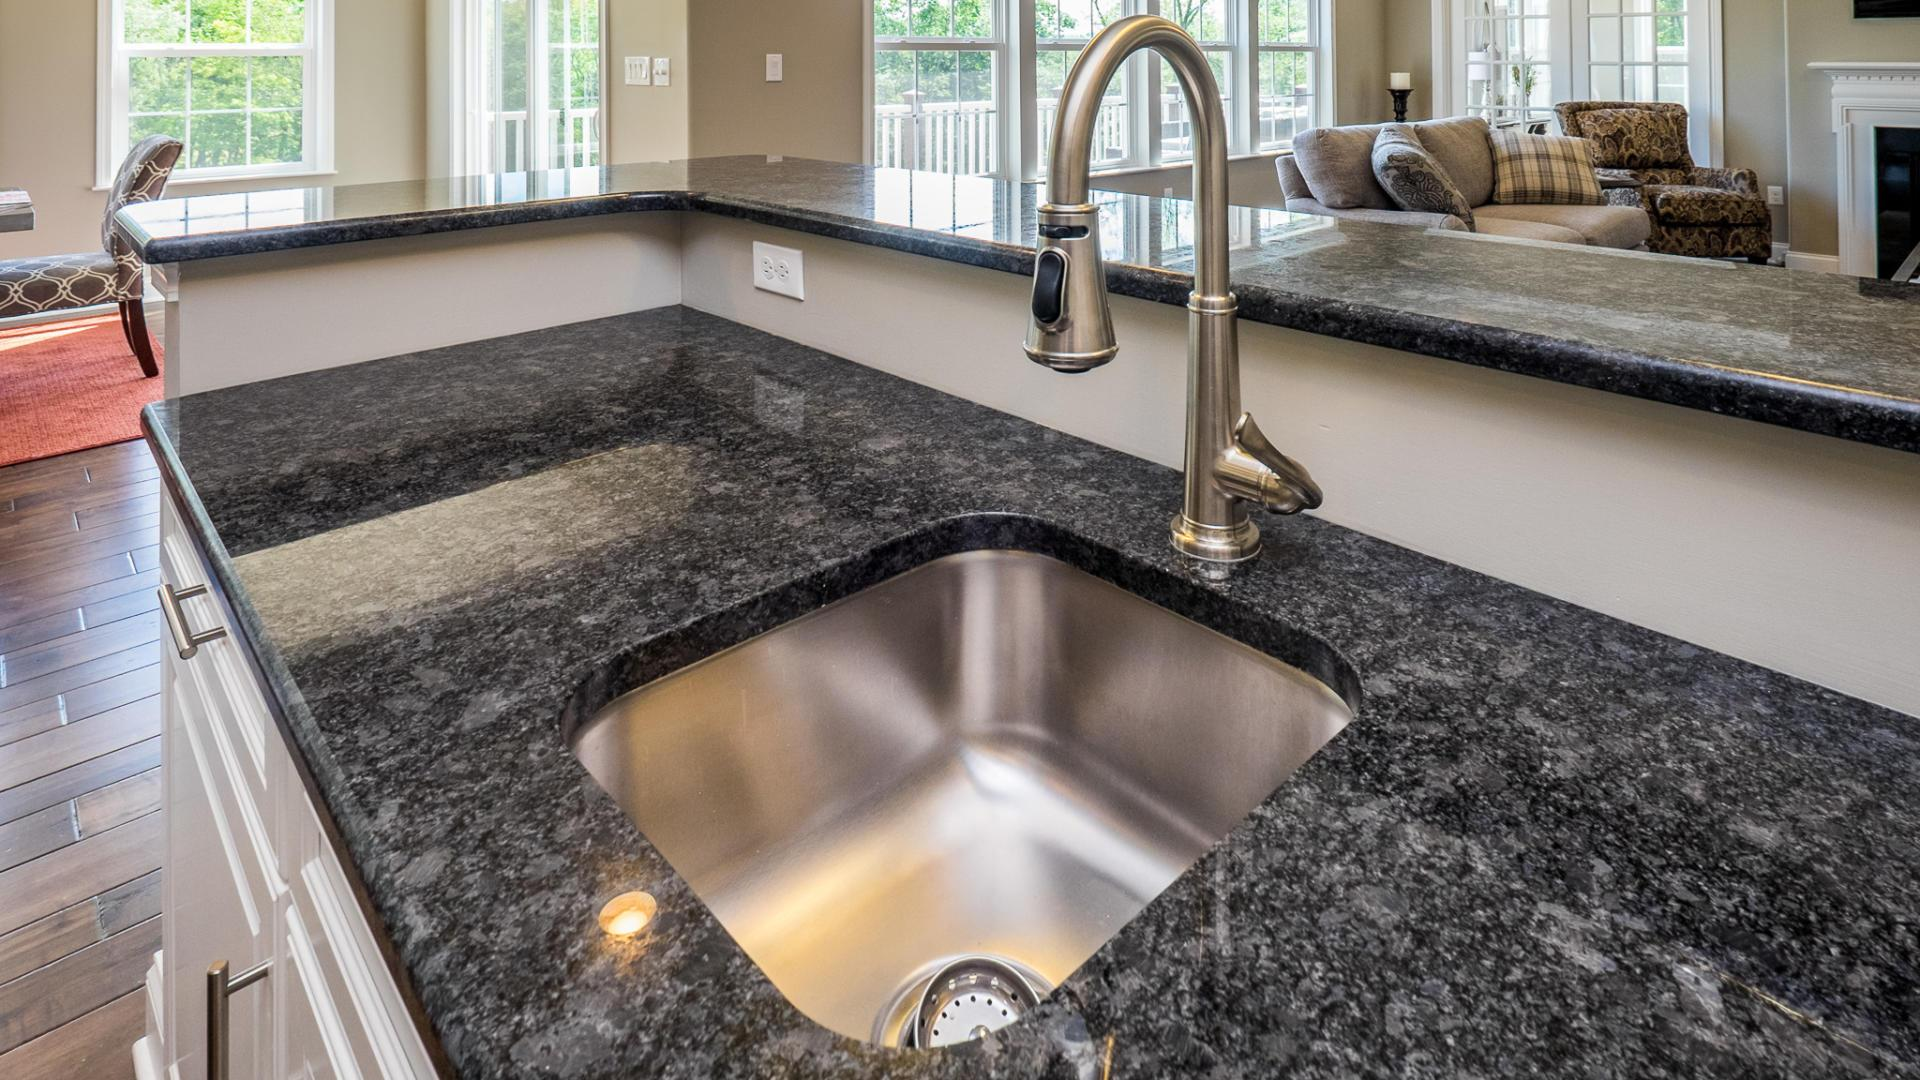 Kitchen featured in the Eisenhower By Maronda Homes in Cincinnati, KY